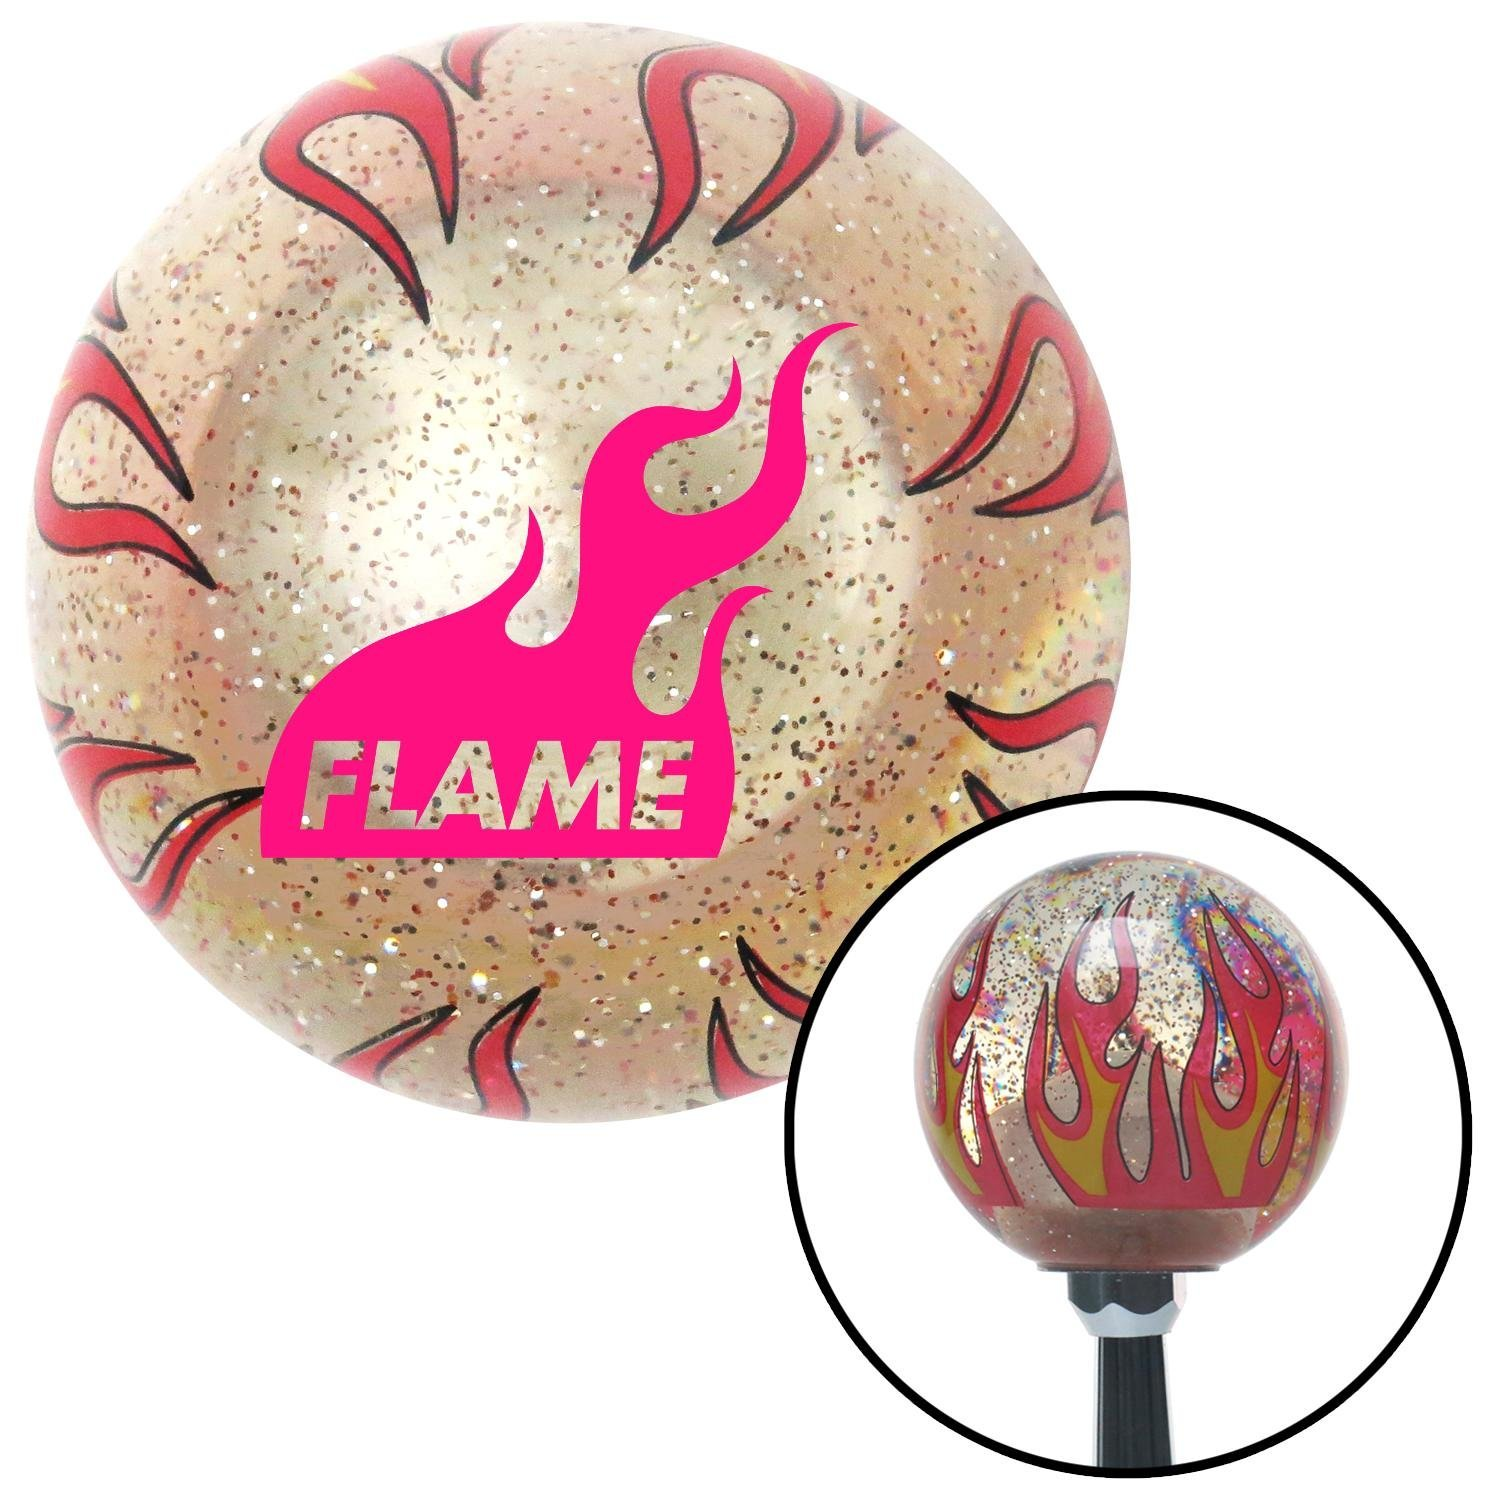 American Shifter 266288 Green Flame Metal Flake Shift Knob with M16 x 1.5 Insert Pink Sergeant Major